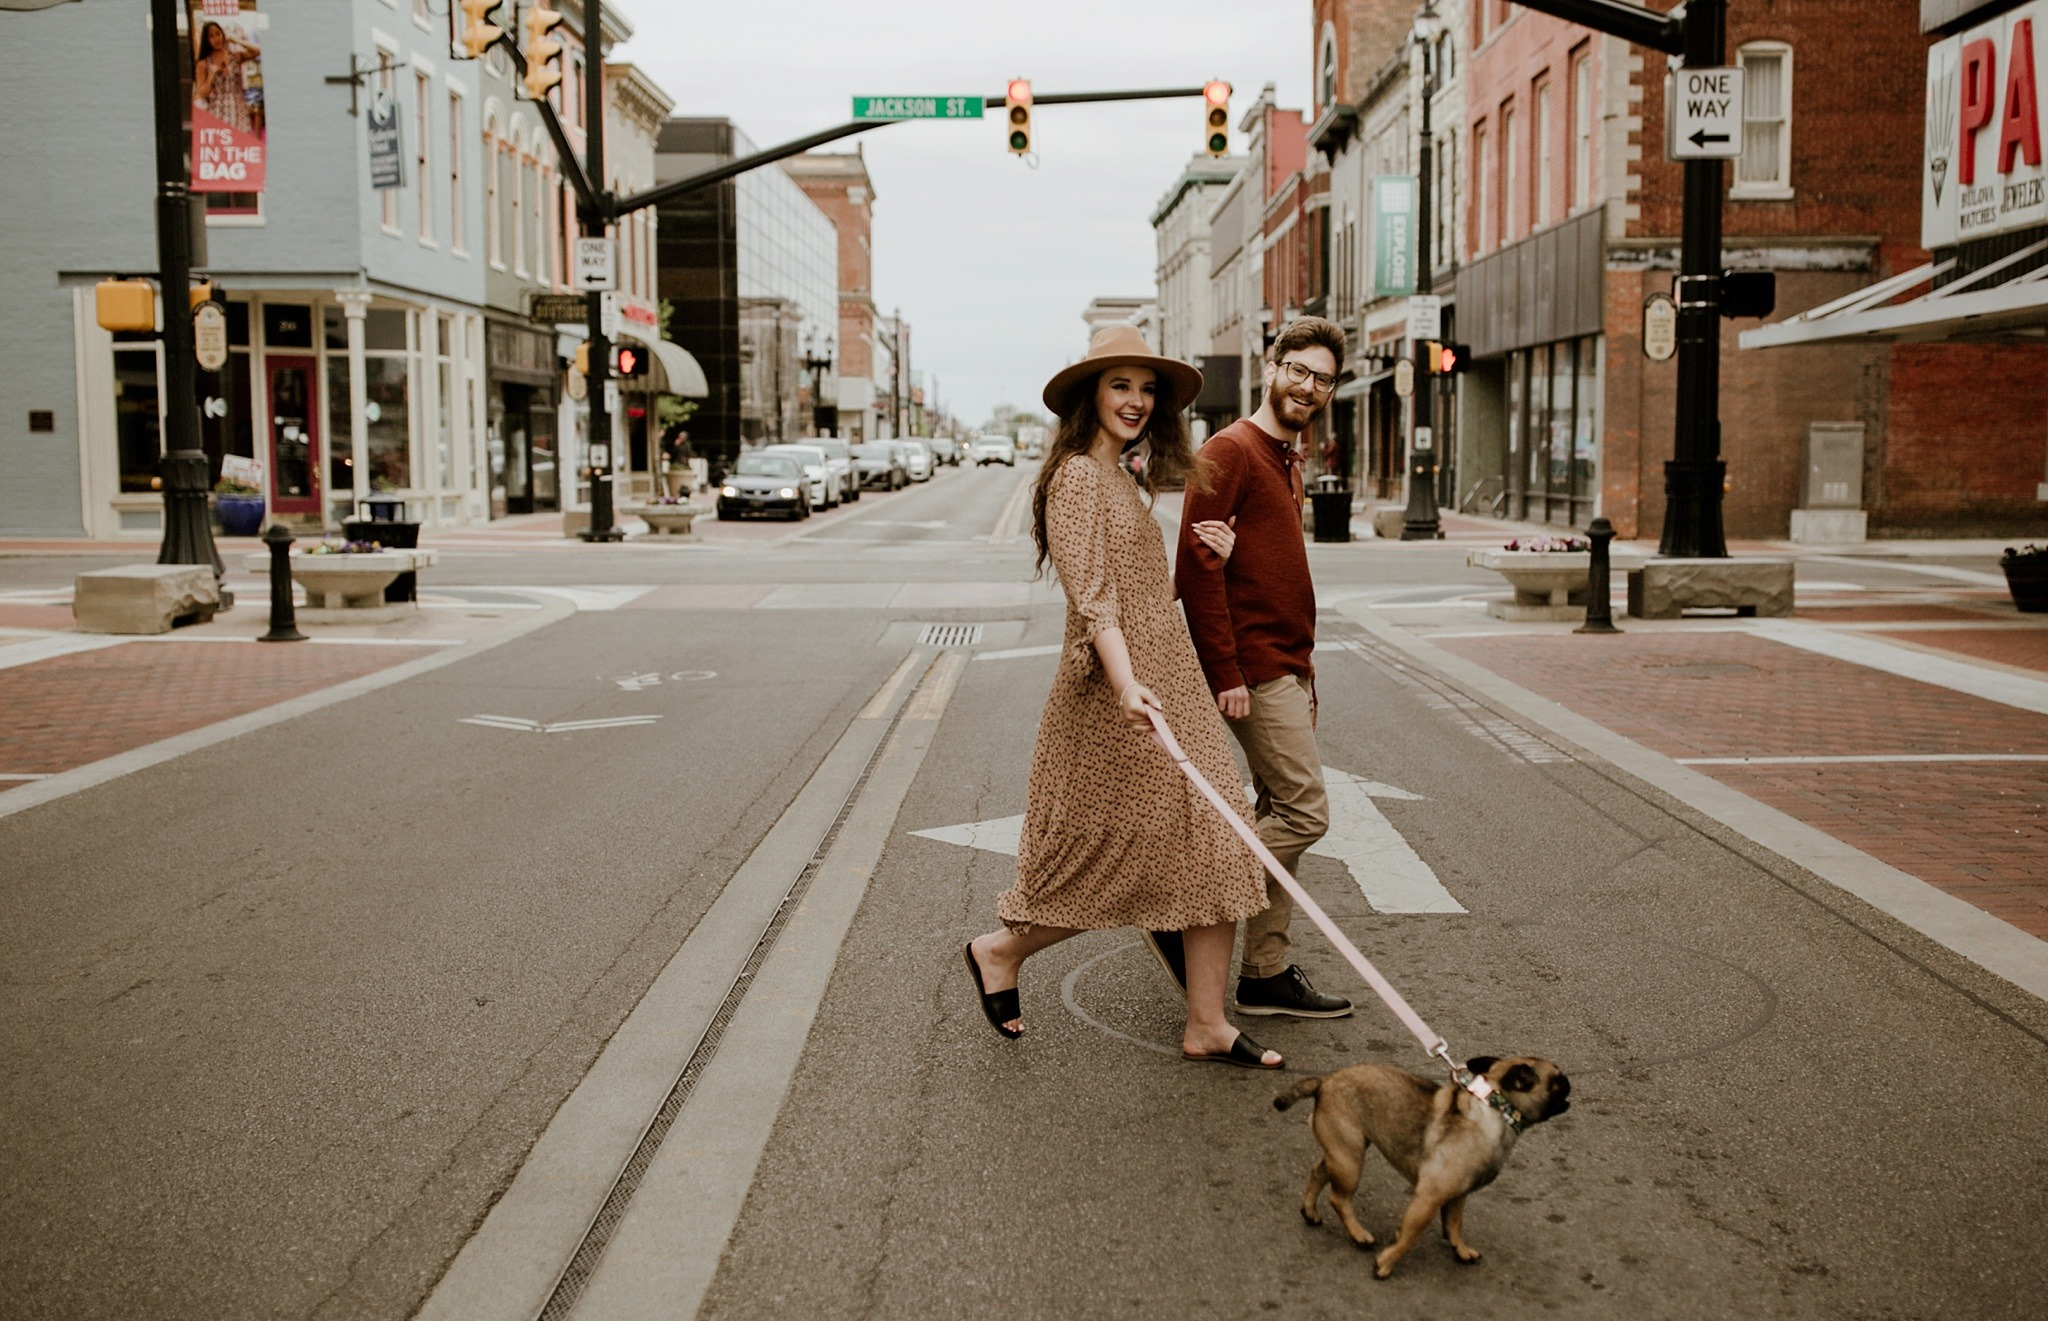 Courtney Thomas and fiancé walking across the street with a dog in downtown Muncie, Indiana